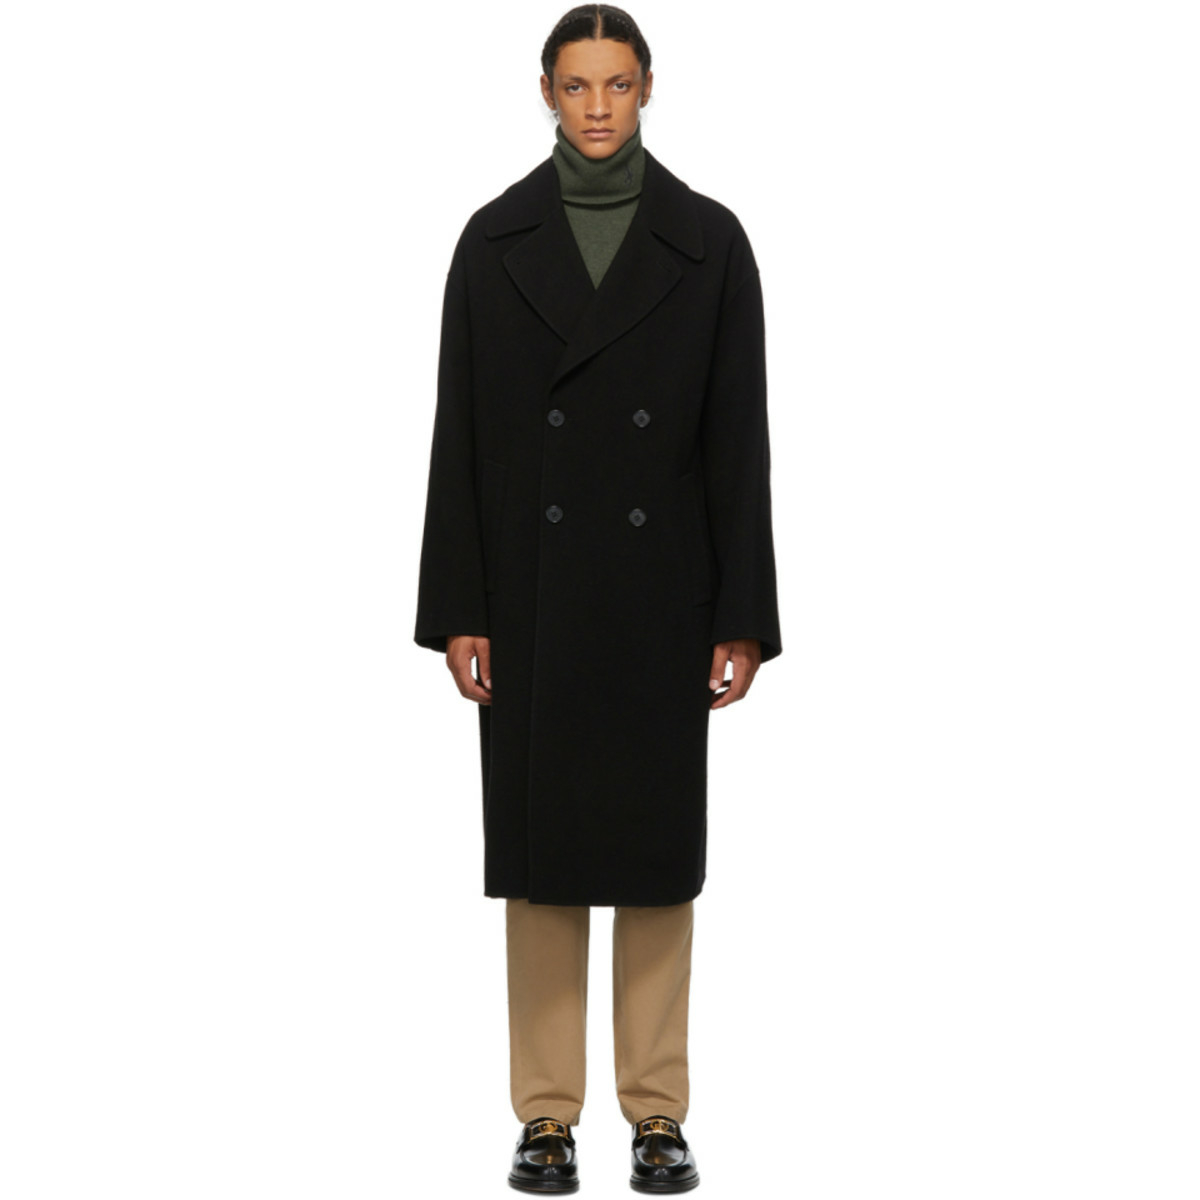 Men FASHION - GOOFASH - Mens COATS